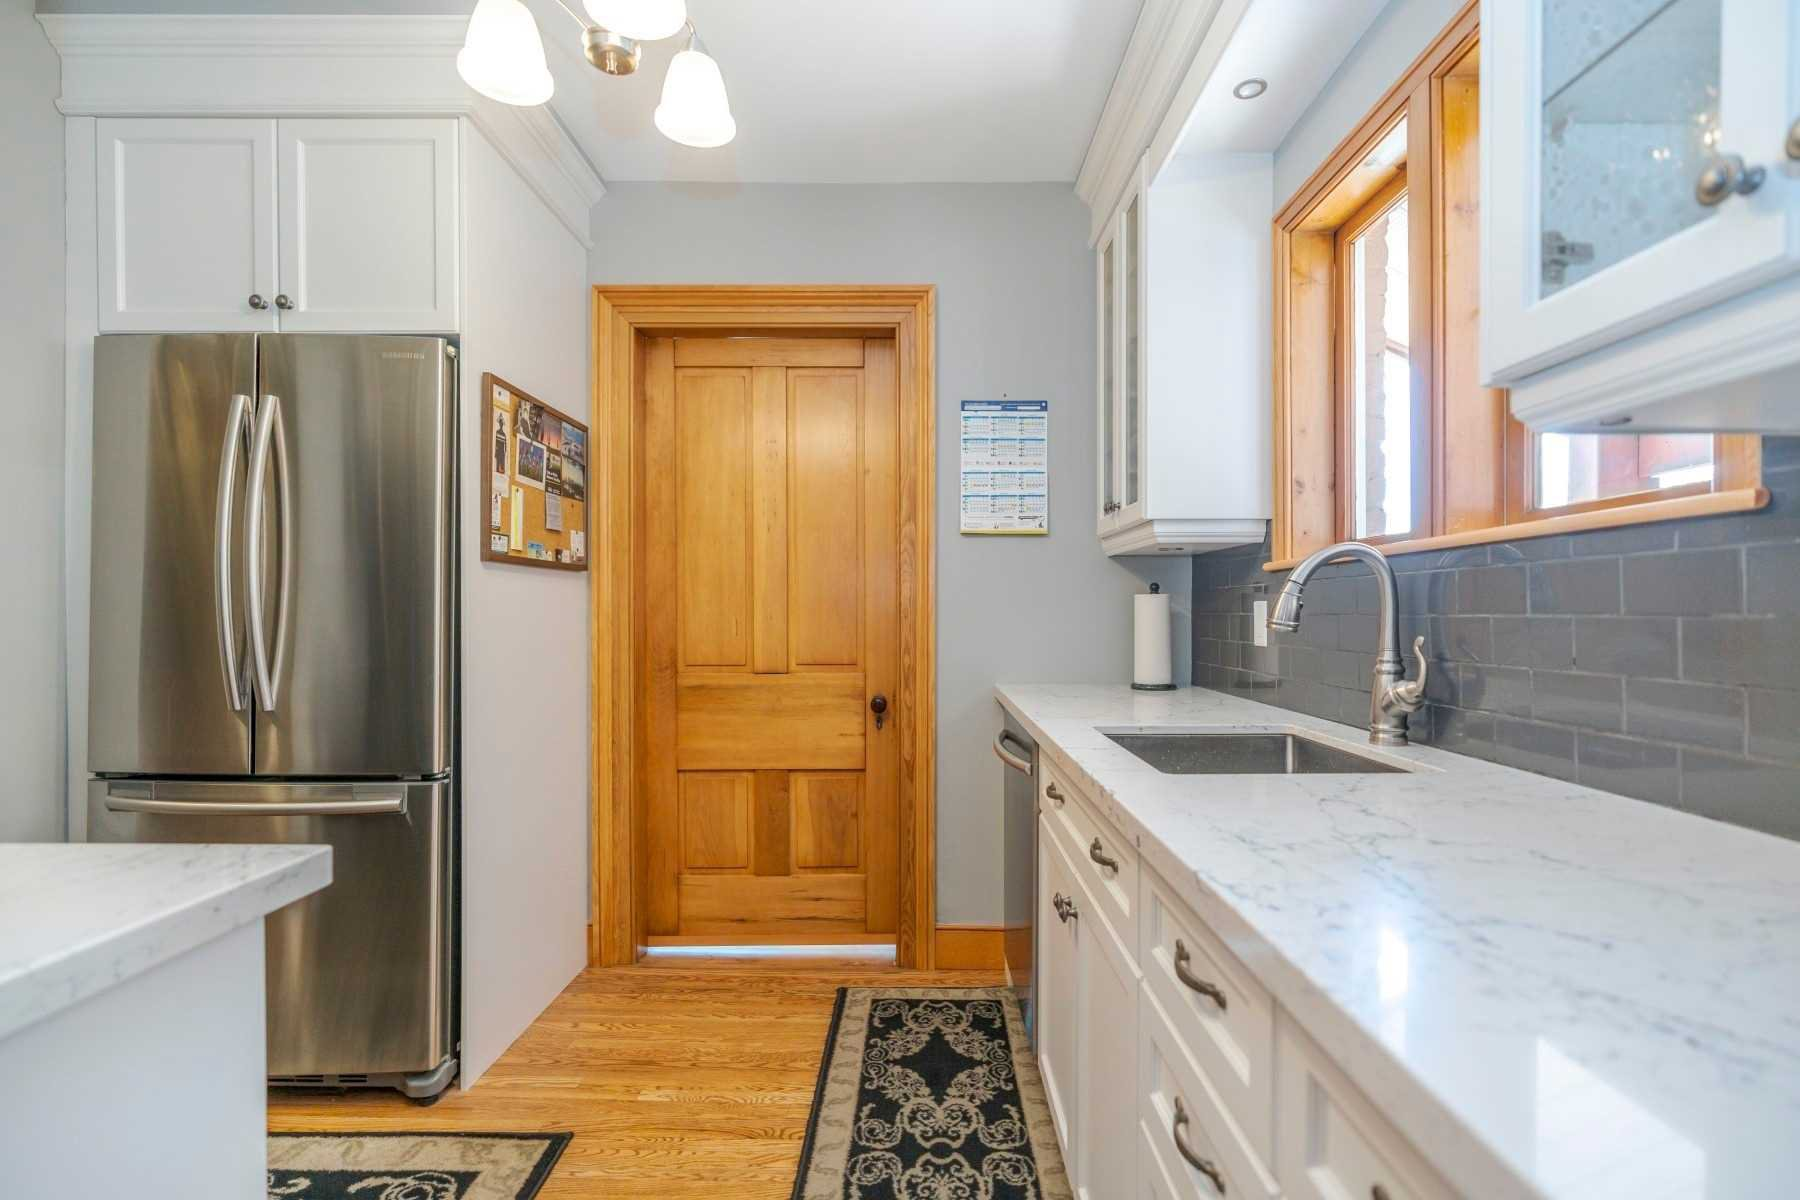 Photo 8: Photos: 1009 S Centre Street in Whitby: Downtown Whitby House (Bungalow) for sale : MLS®# E4714116